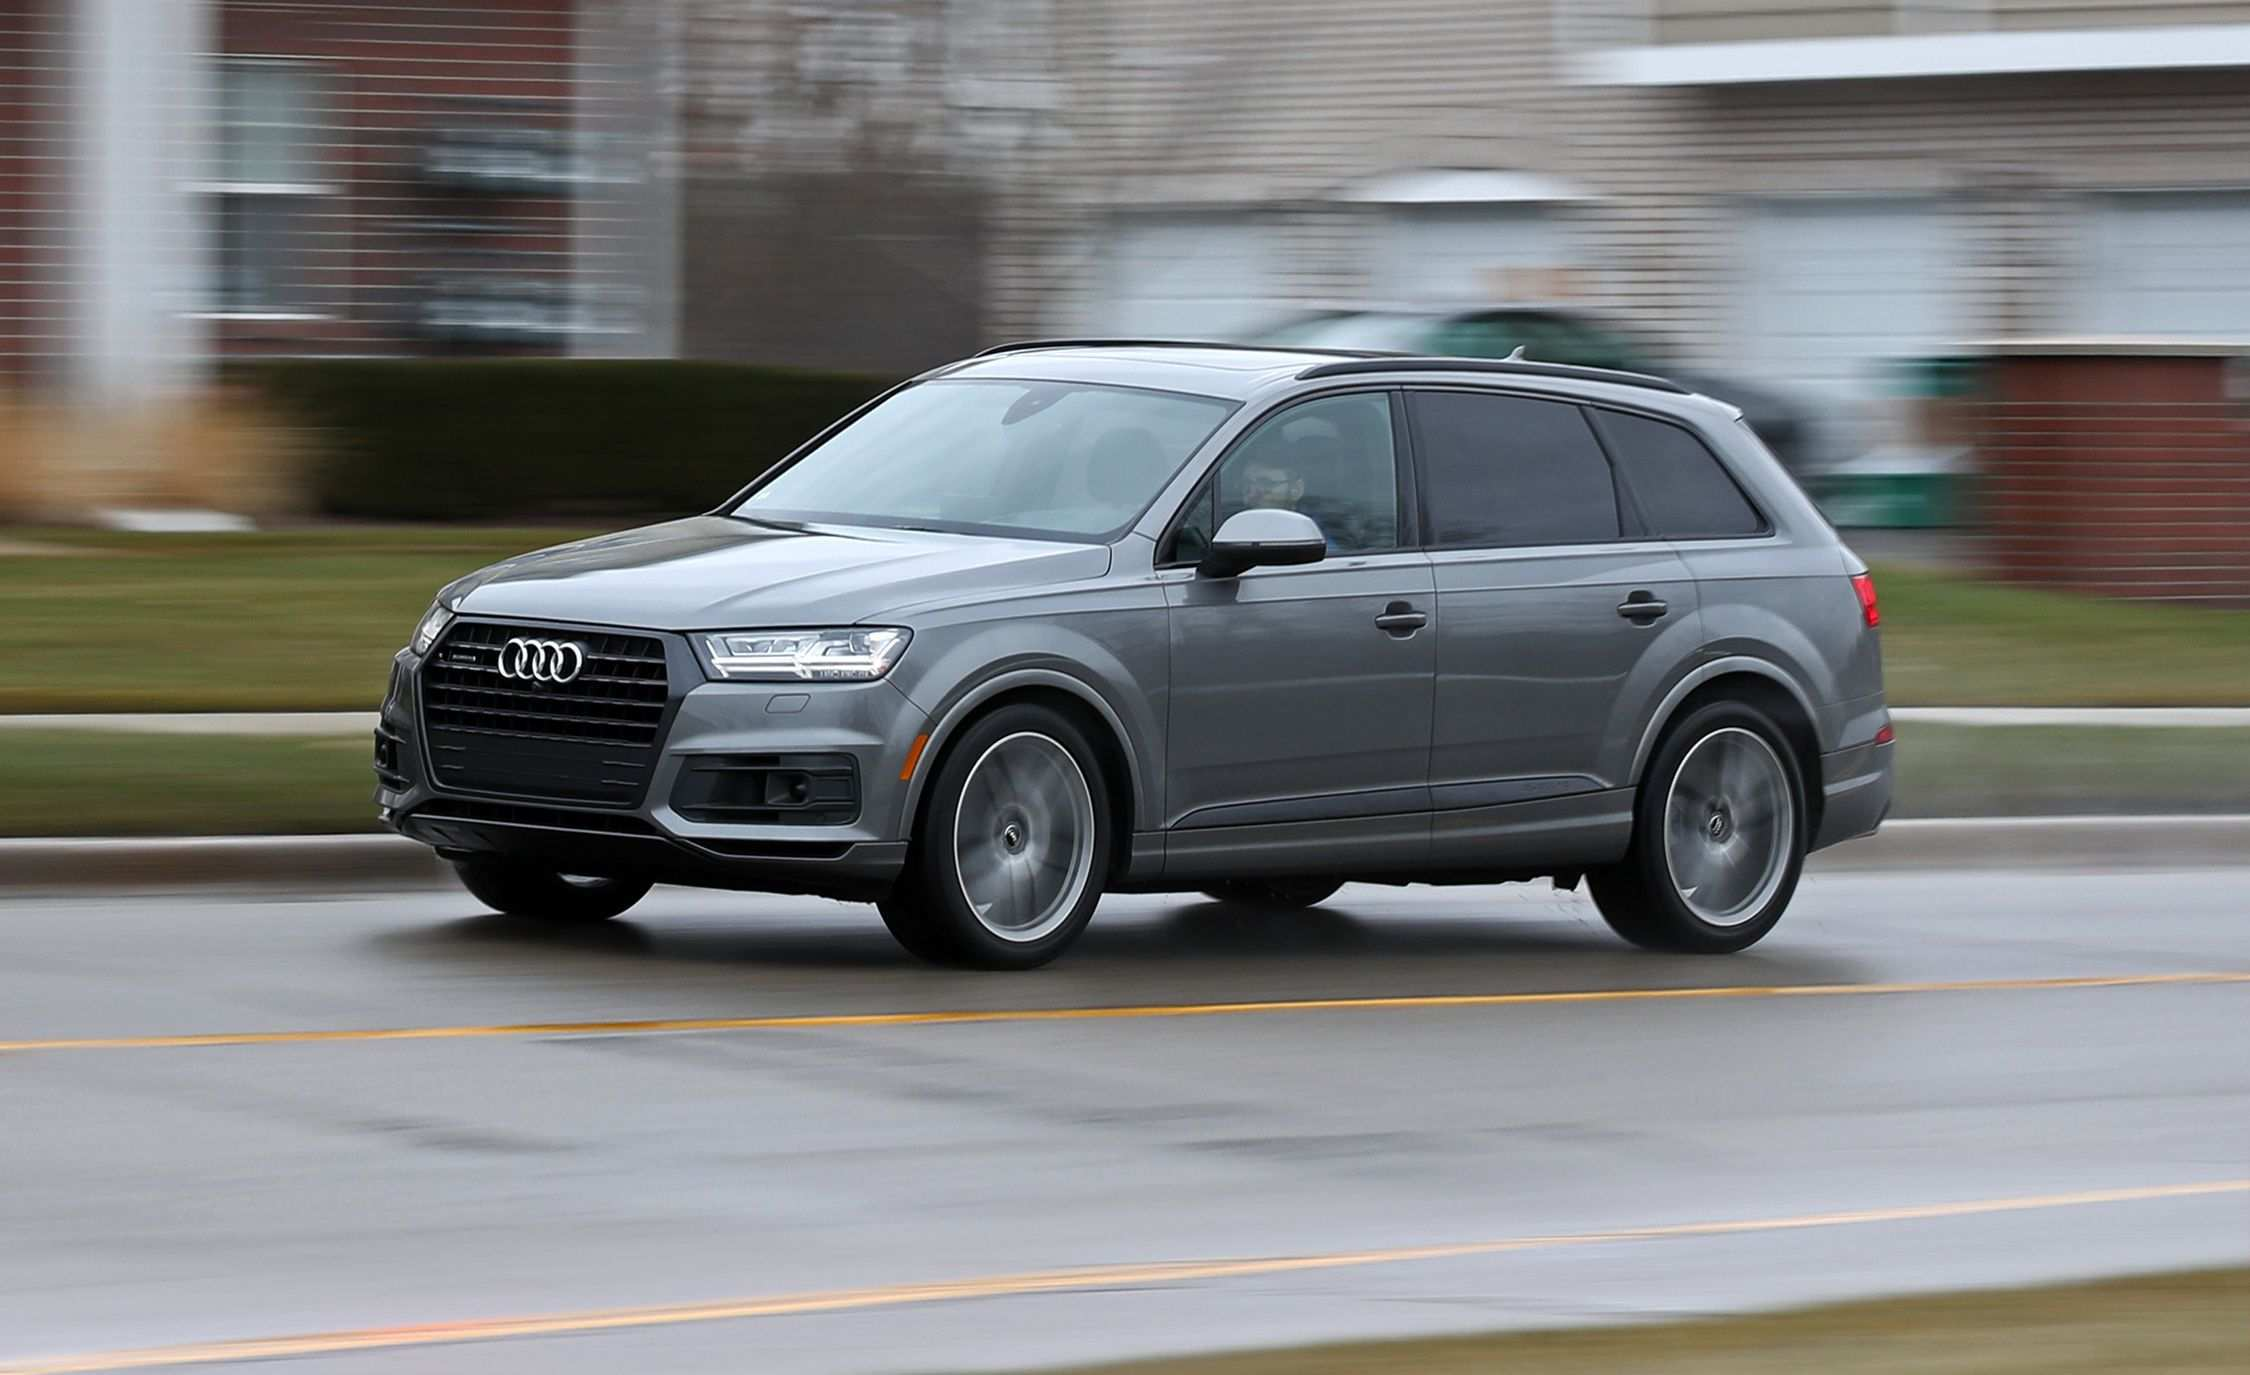 79 The When Does 2020 Audi Q7 Come Out Images for When Does 2020 Audi Q7 Come Out